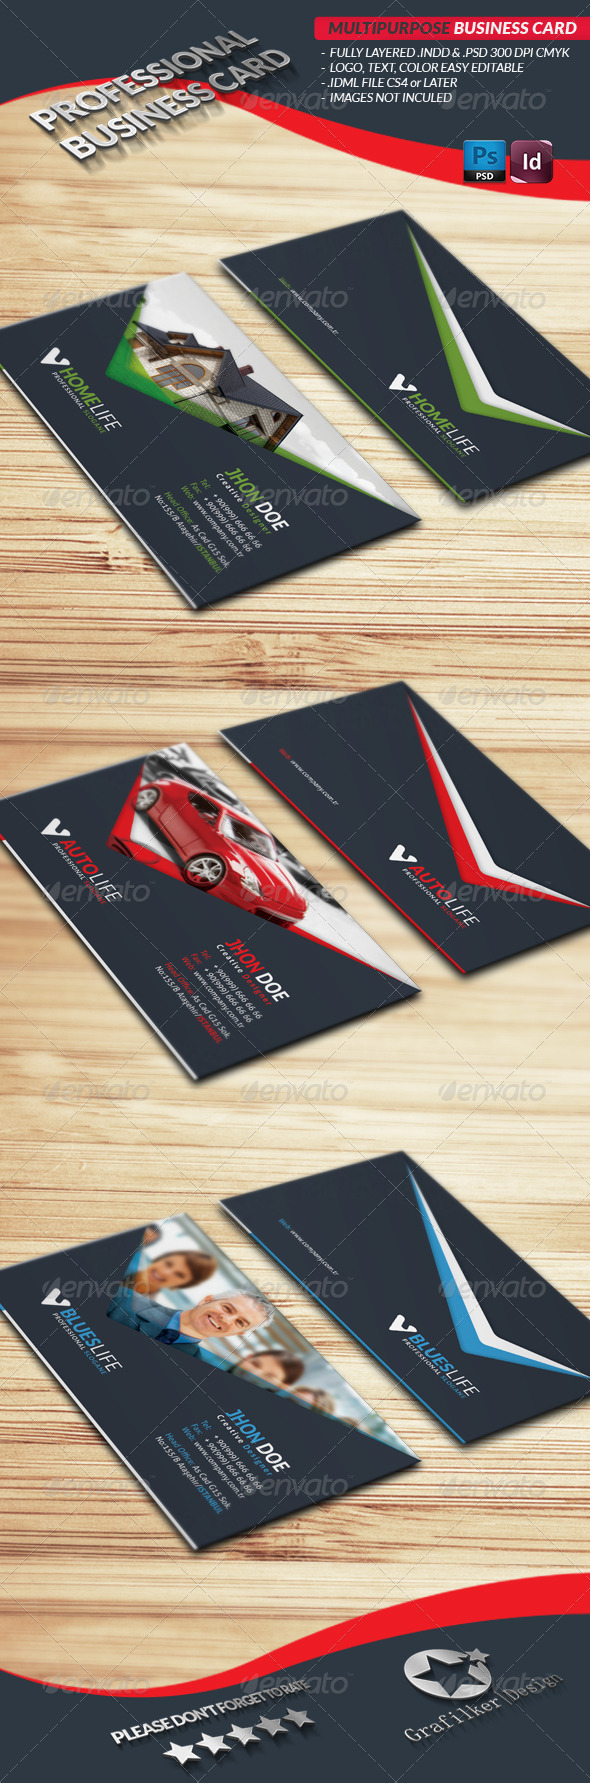 Multipurpose Business Card - Creative Business Cards